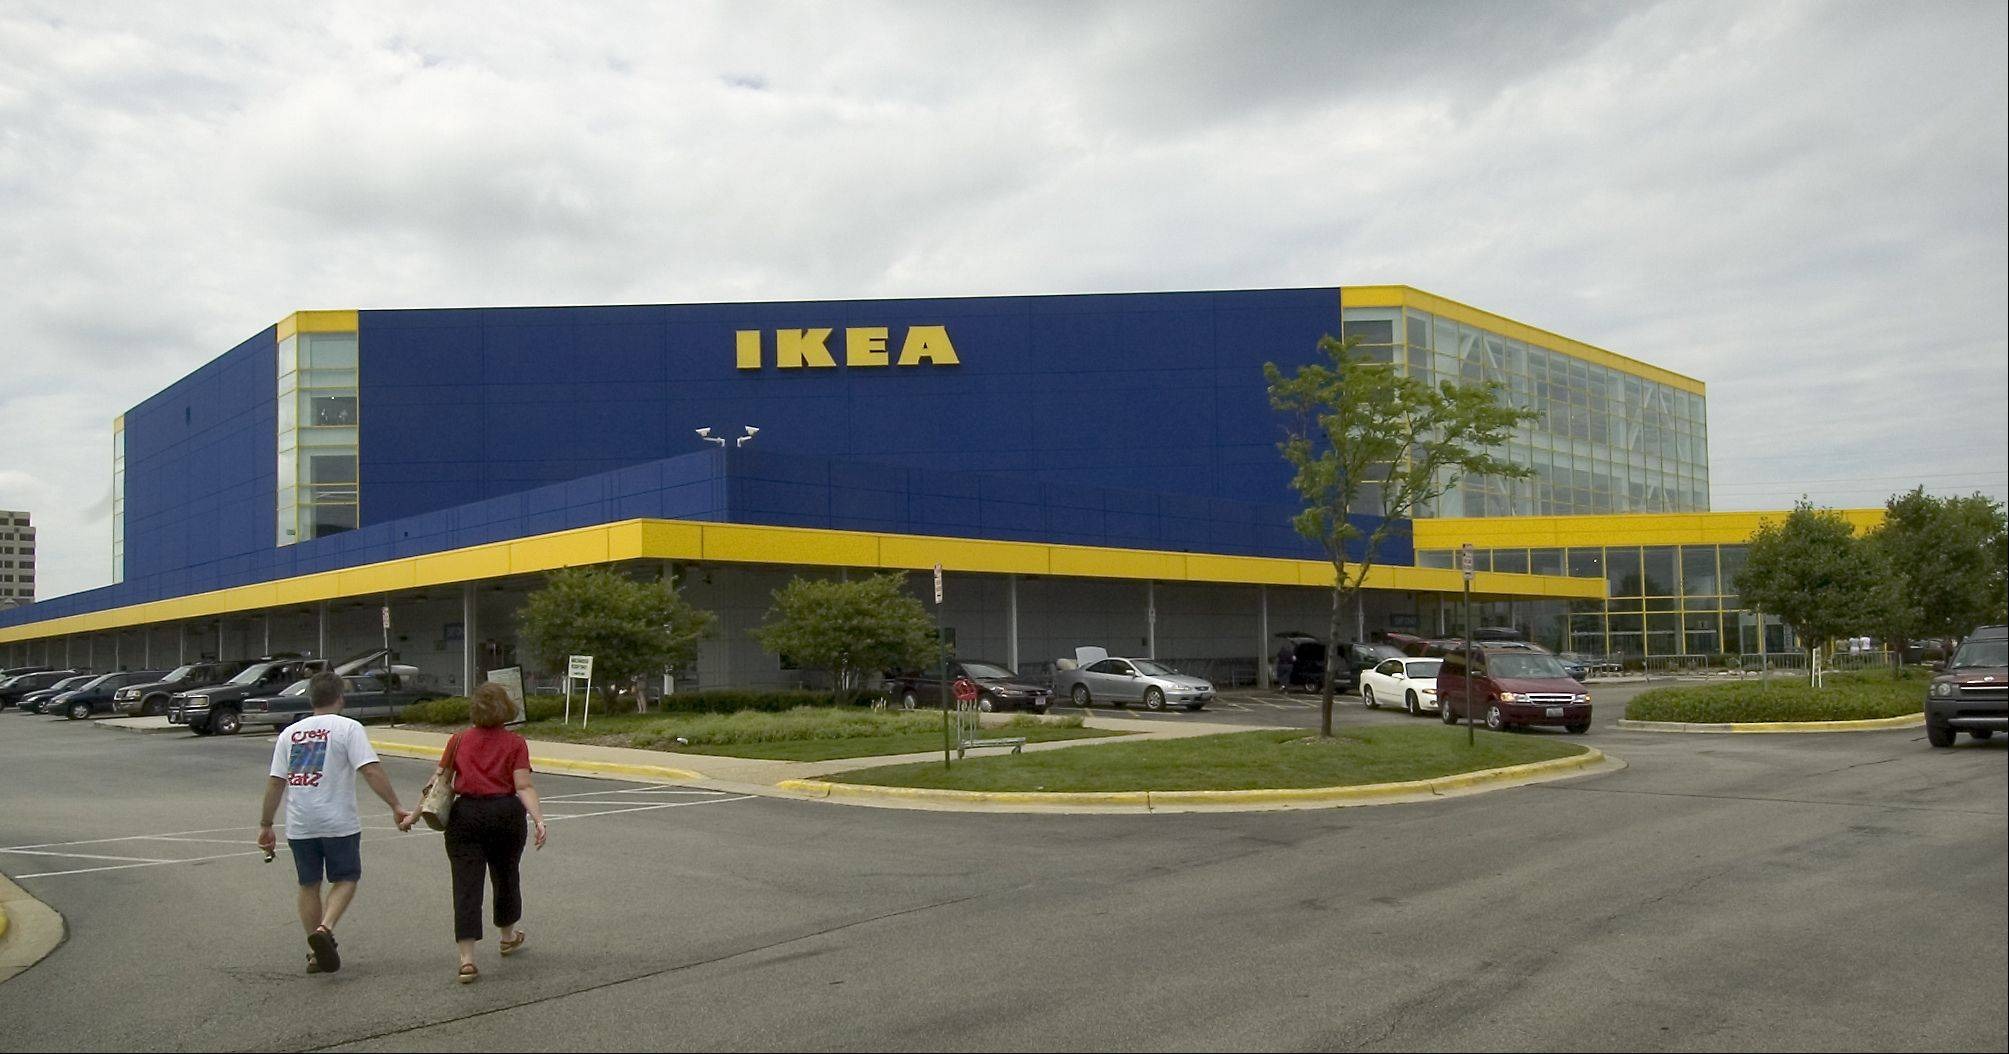 Best known for its flat-pack furniture, Ikea is now planning to launch a budget hotel chain in Europe.